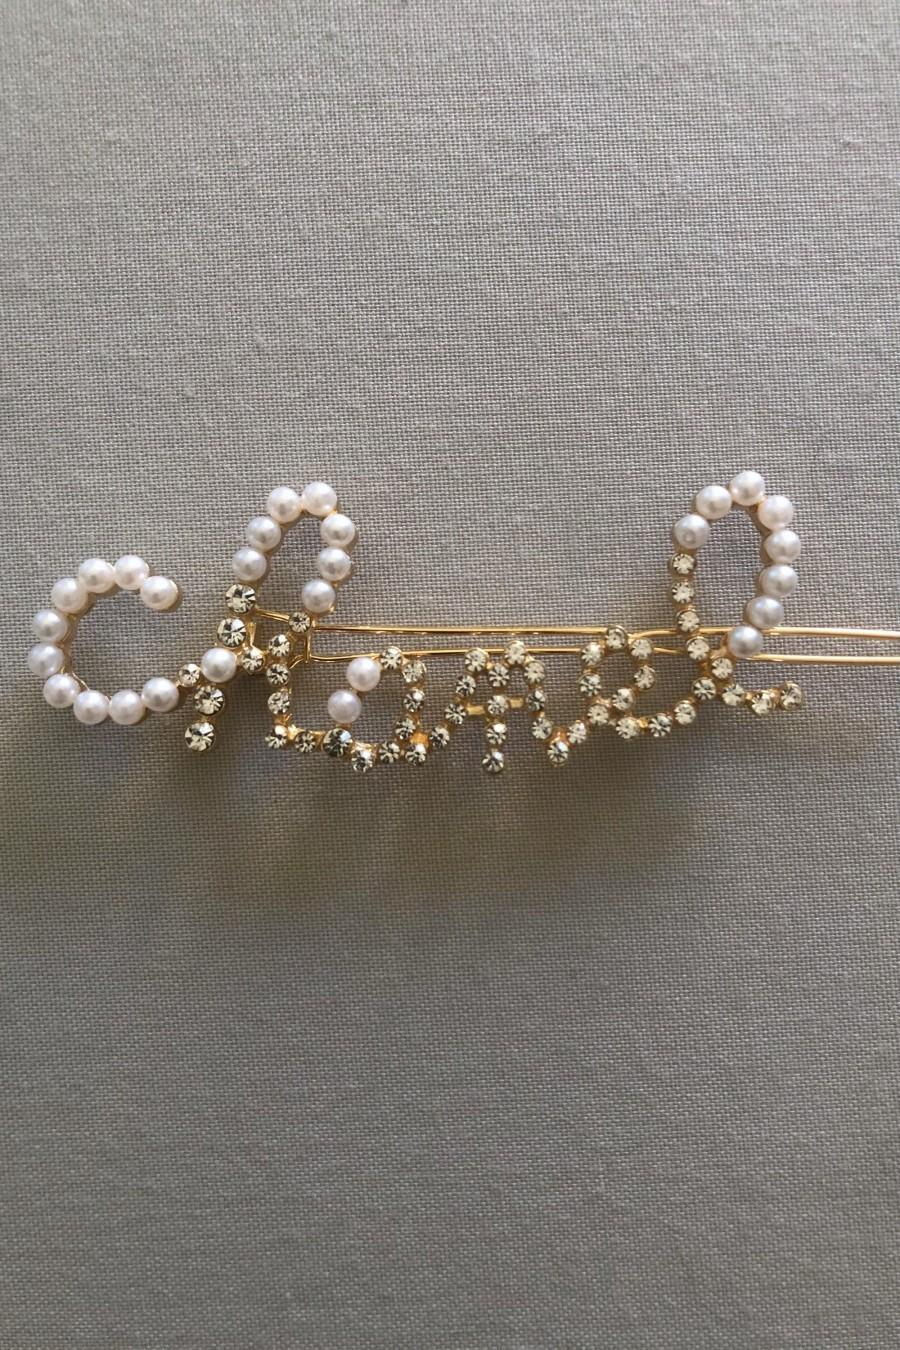 Wedding - Crystal Pearl Hair Clip Rhinestone Gold Plated Minimalist Crystals Made for Her Letter Crystals